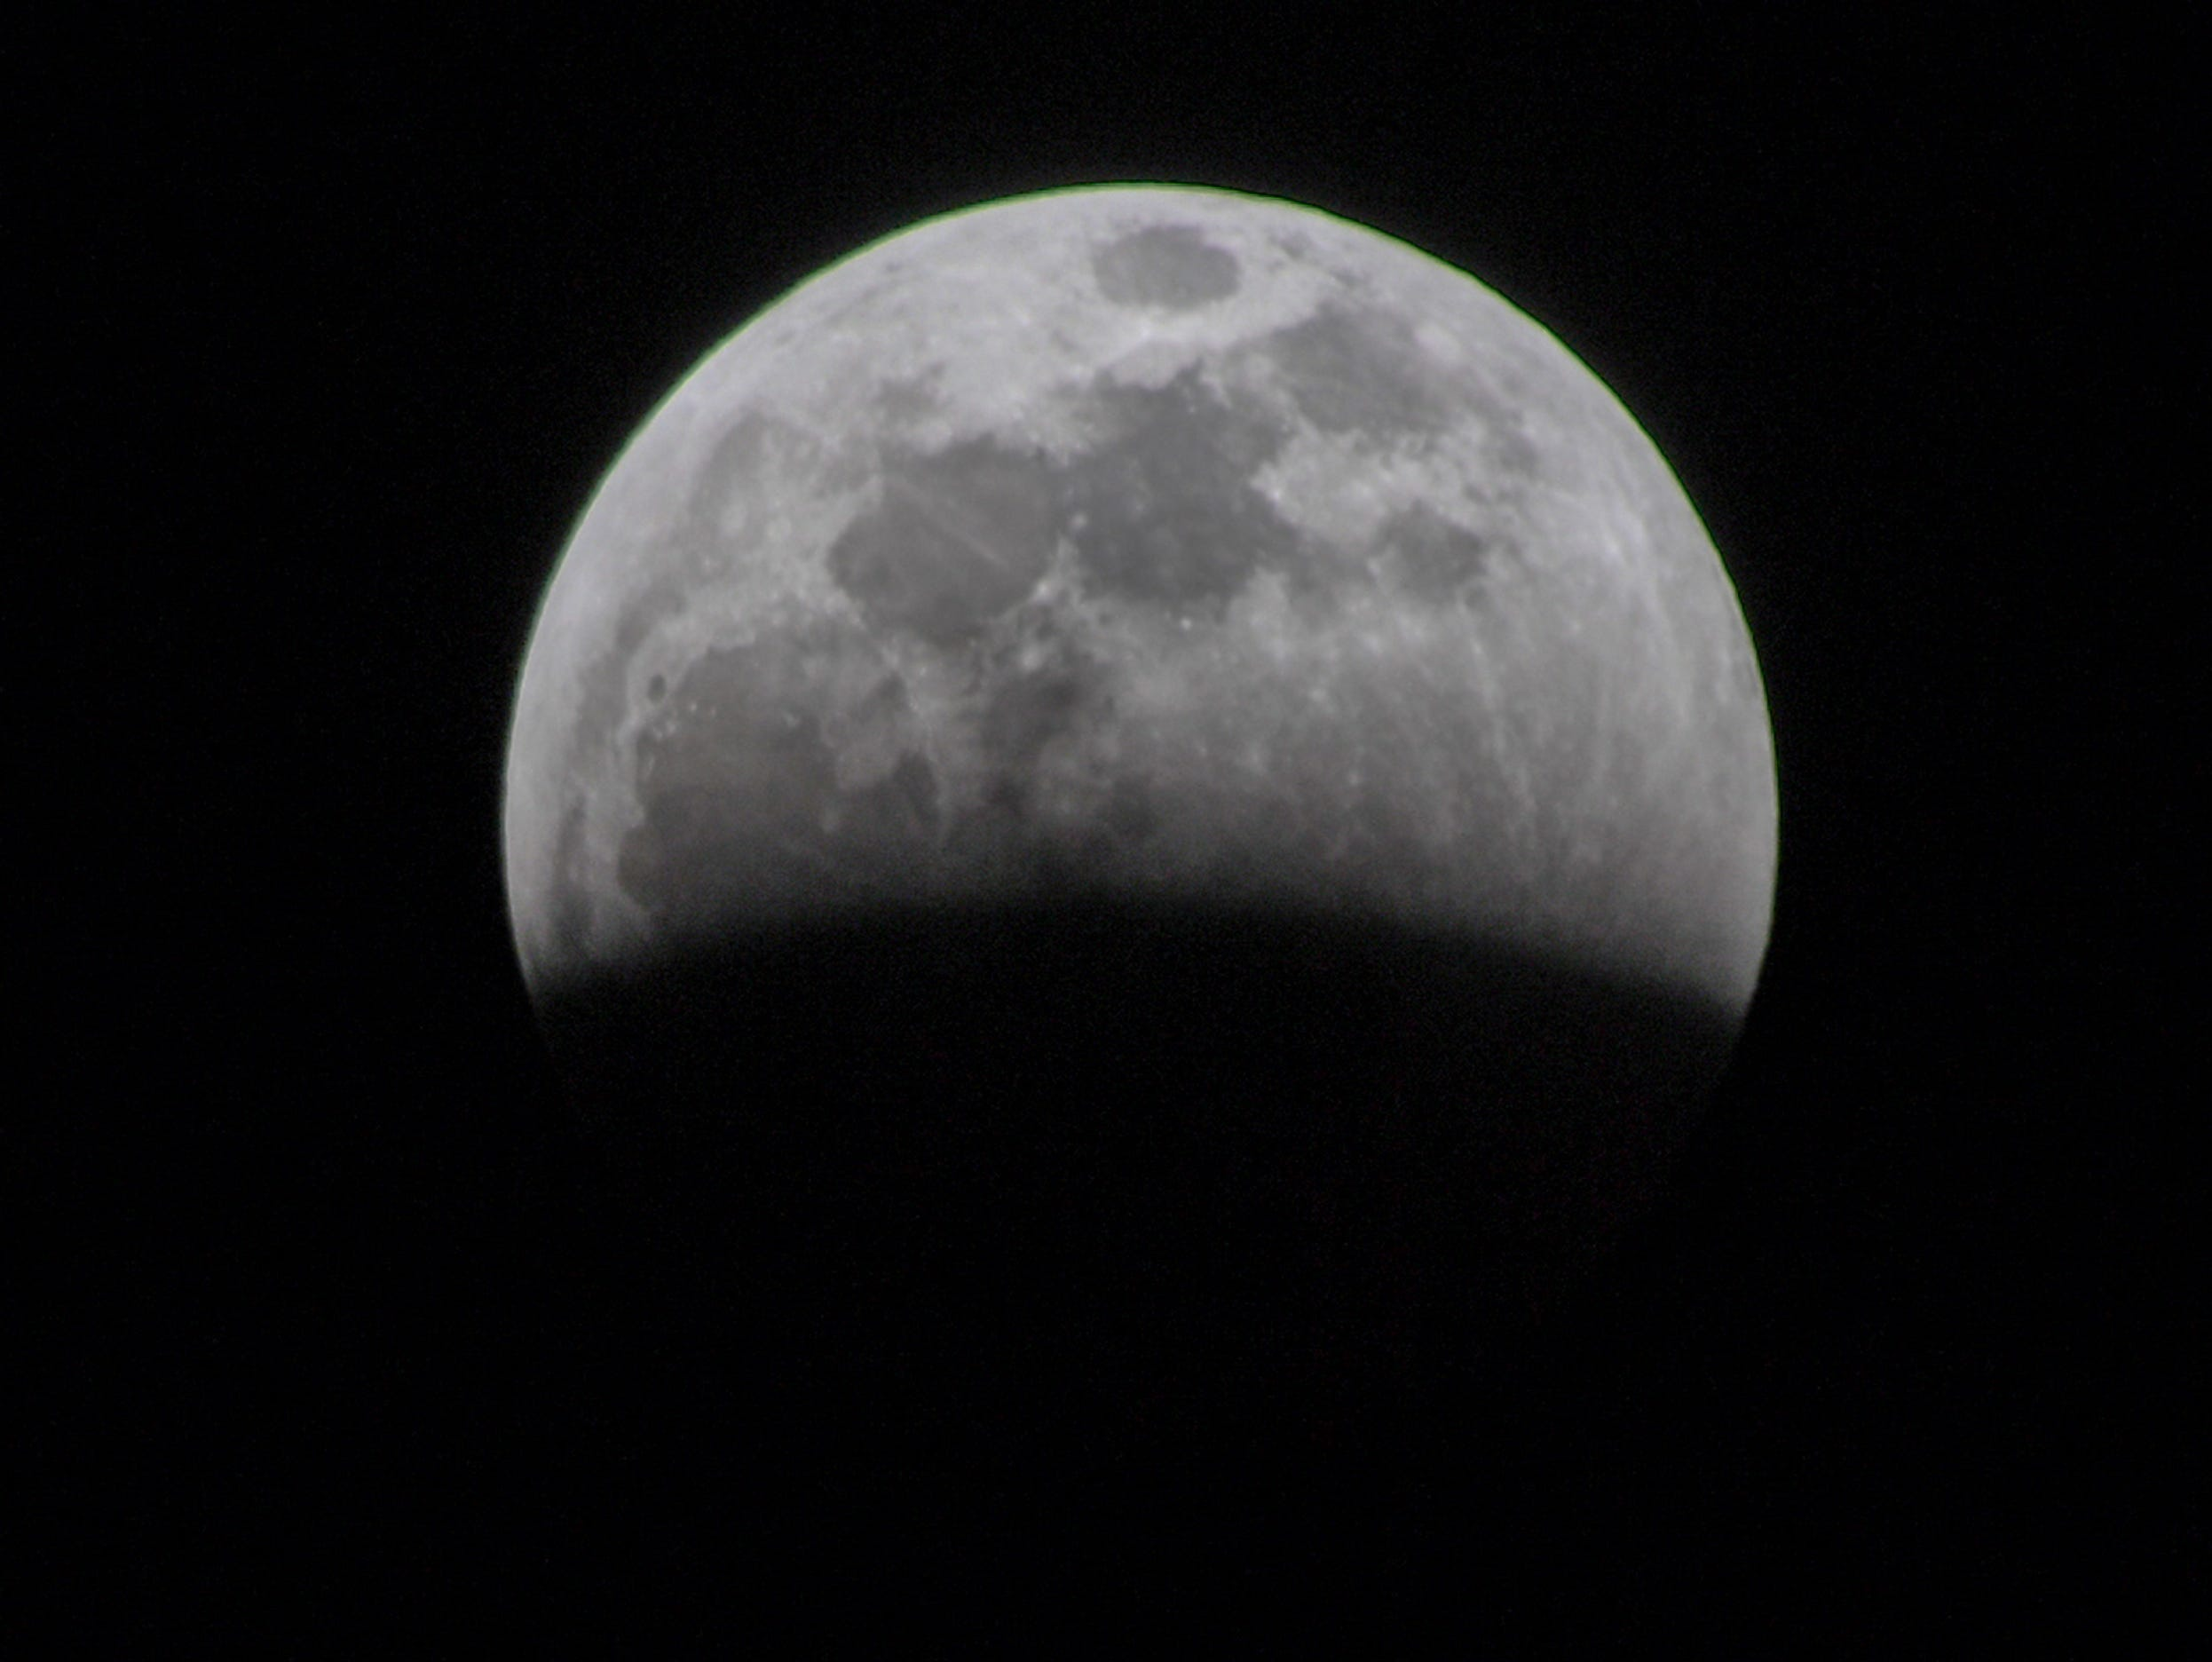 The early stage of the Super blood wolf moon total lunar eclipse, at 10:59 p.m. (EST) January 20, 2019, when the moon began edging into Earth's shadow and became darkened at 11:41 p.m., seen from Anderson, S.C.